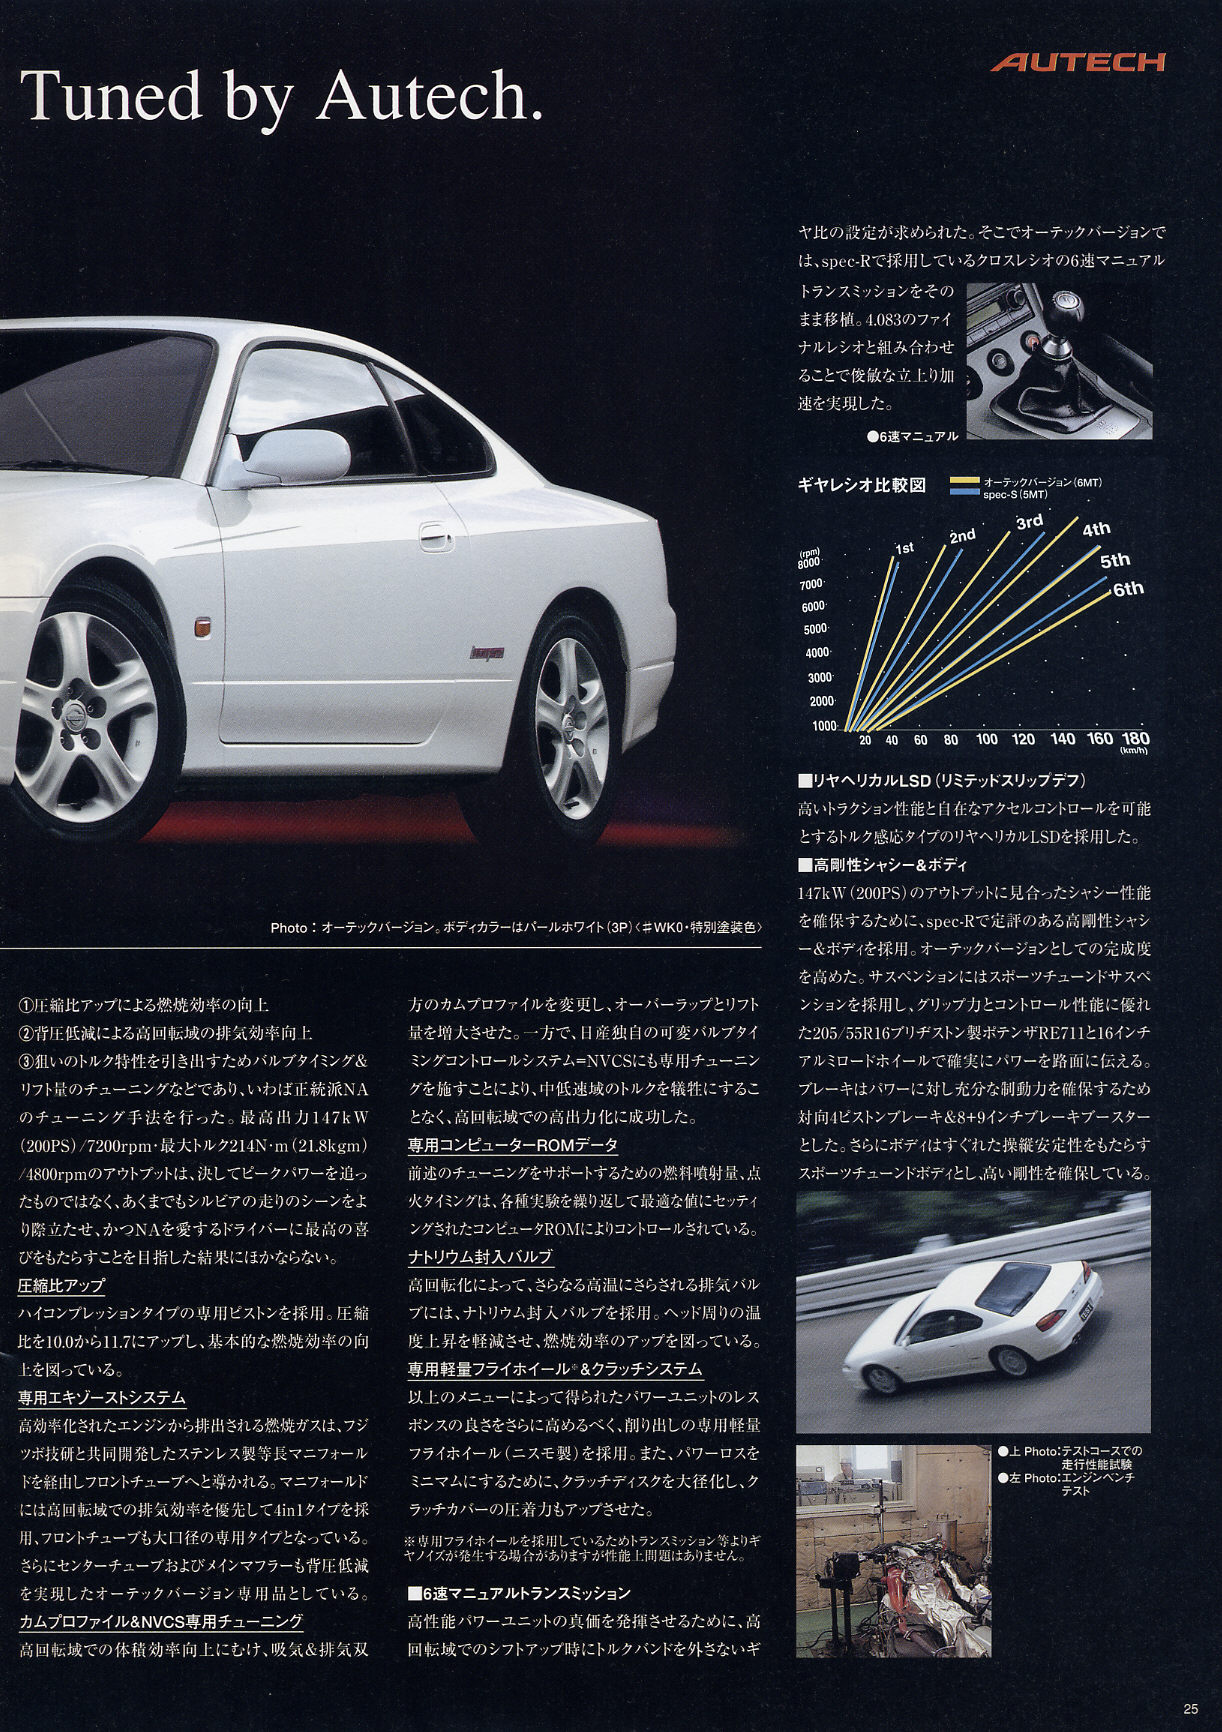 S15 Silvia Original Dealer Brochure (Japan) - 240sx.org